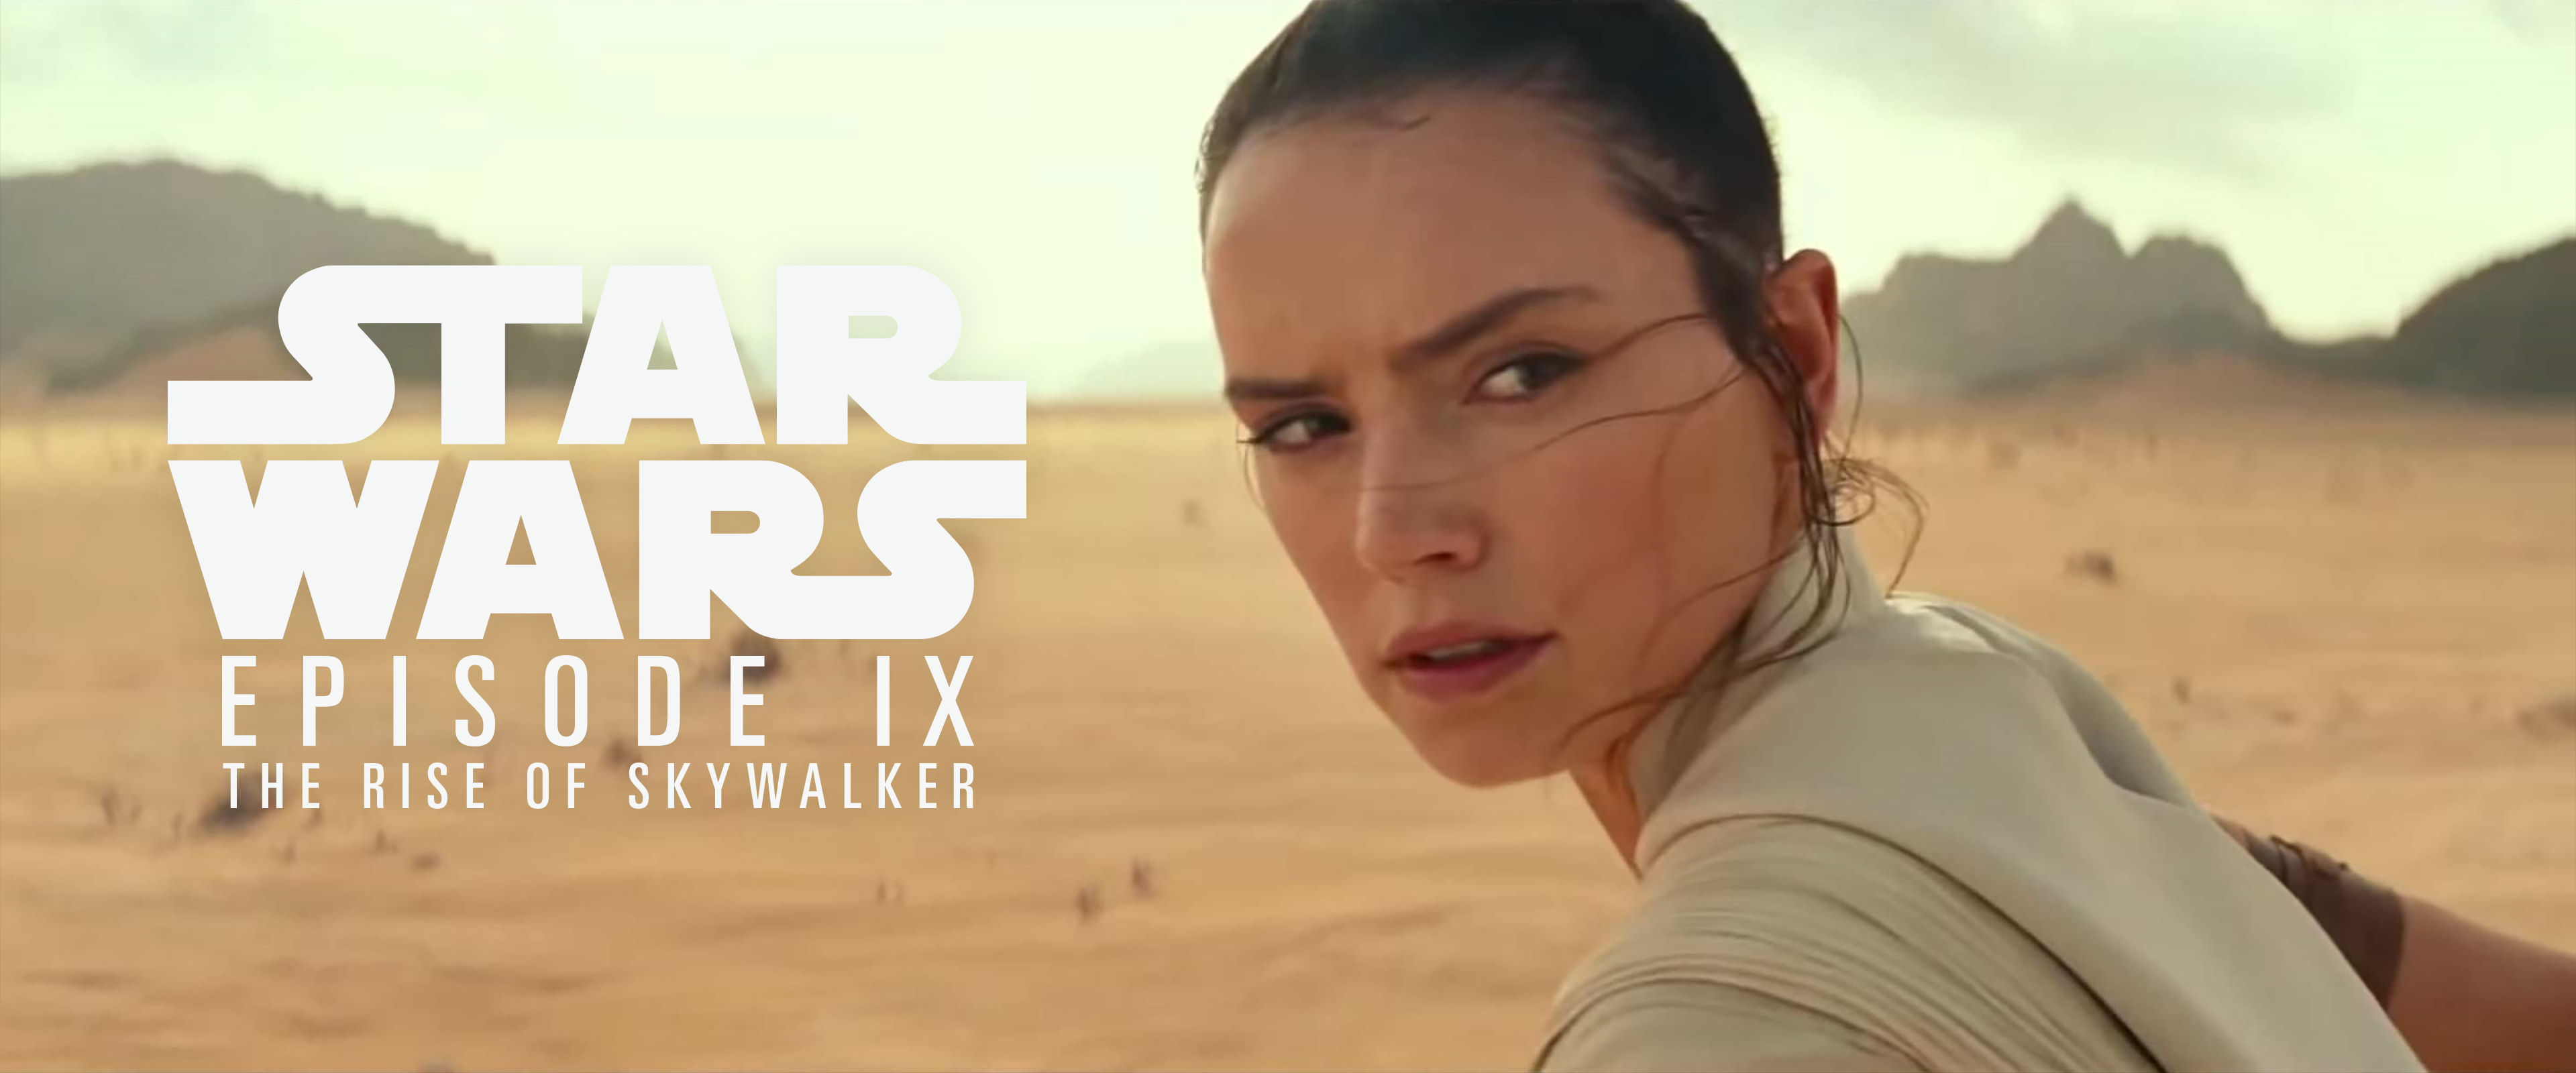 Episode IX: The Rise of Skywalker